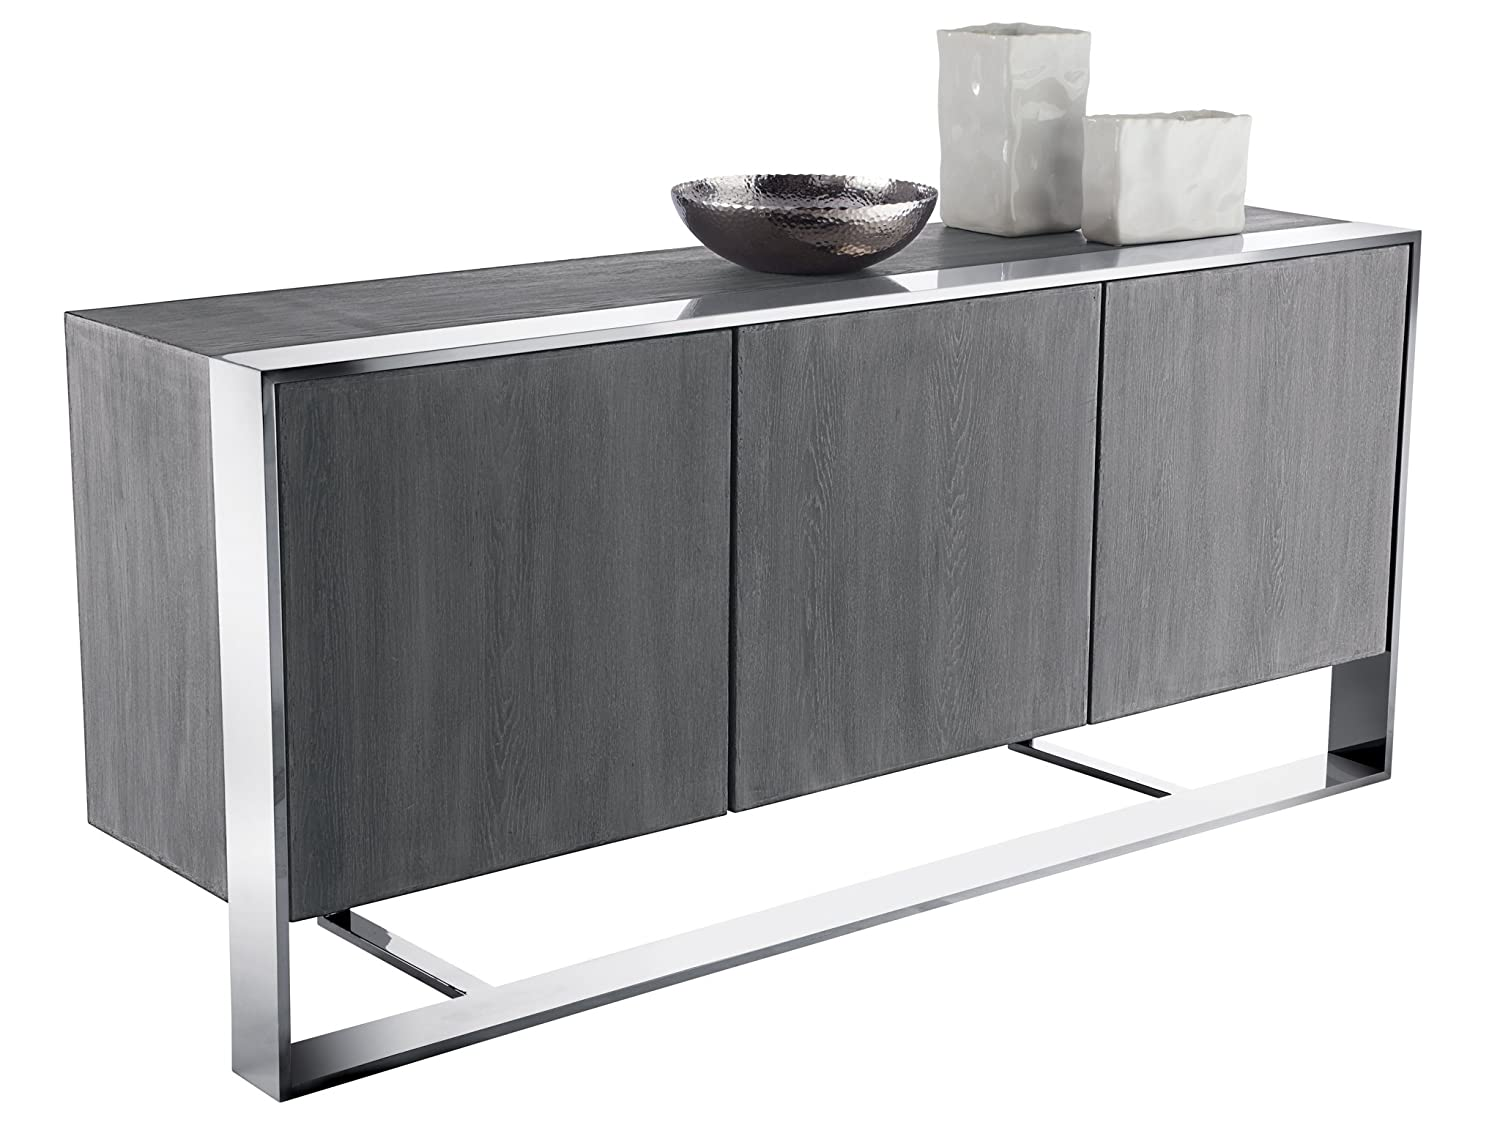 Oak Trendy White Desk Concepts Amazon.com - Sunpan Modern 10272 Club Collection Sideboards Stainless Steel  - Buffets u0026 Sideboards